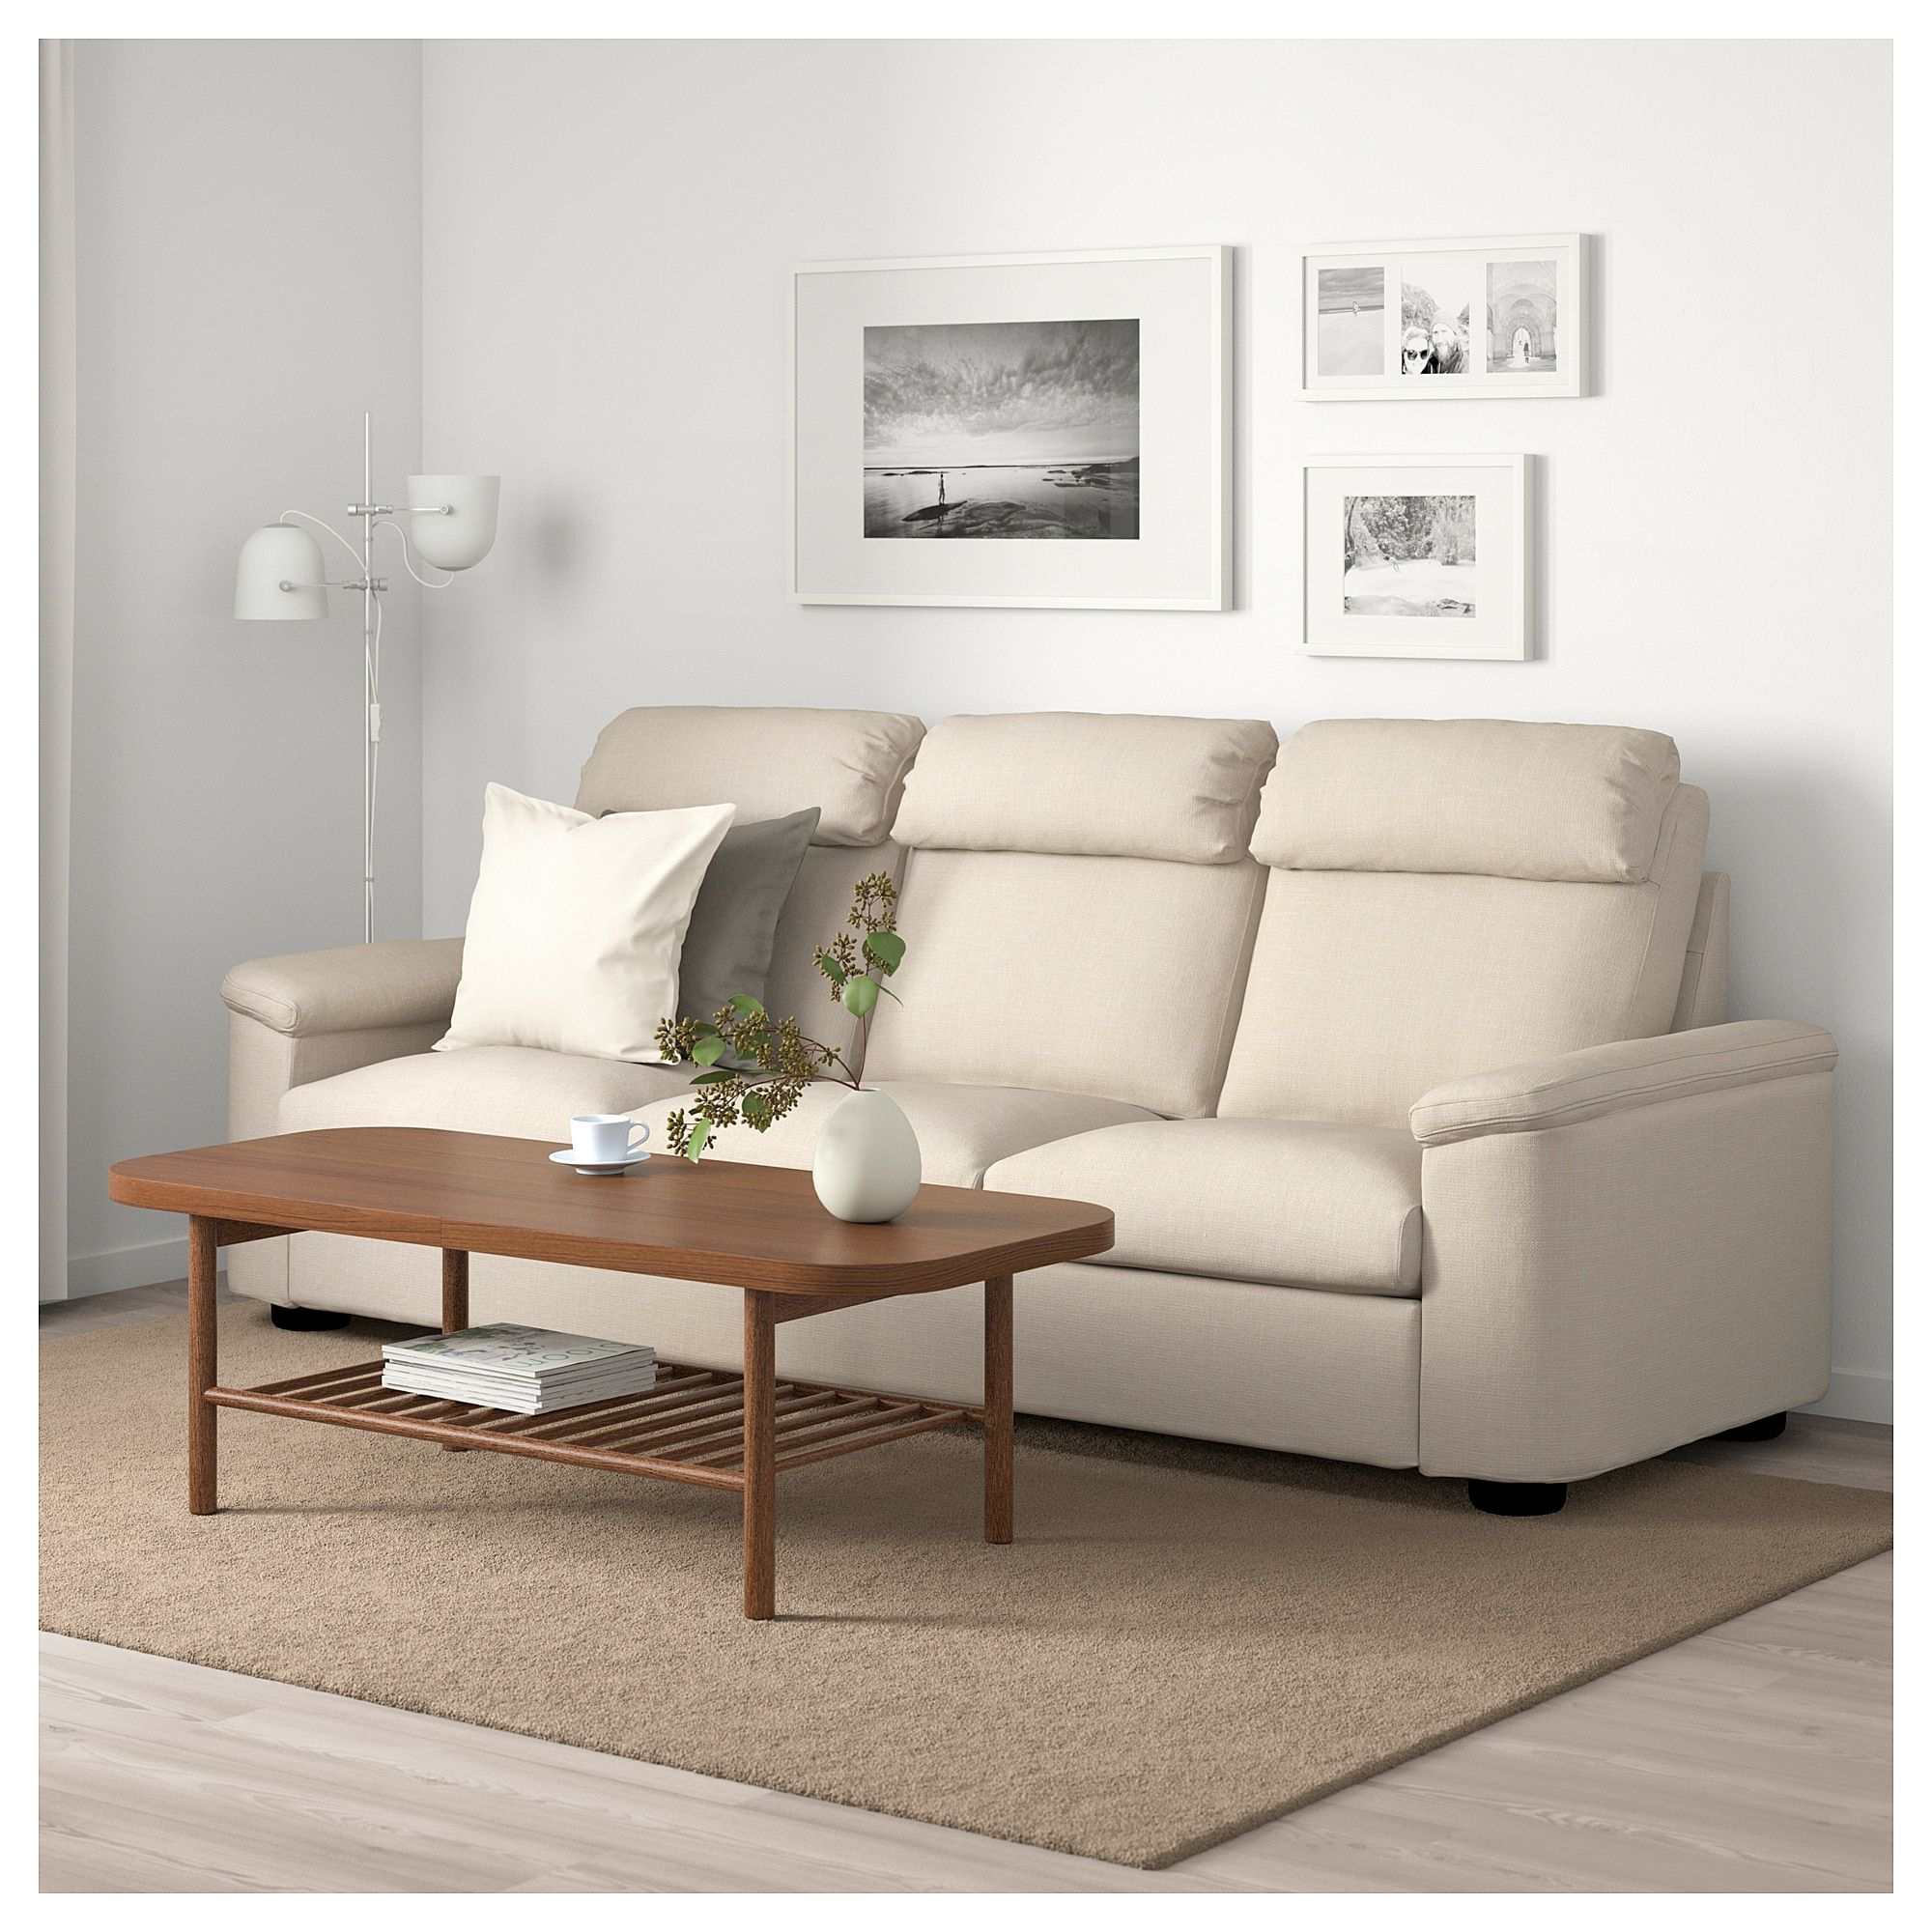 Fantastic Ikea Lidhult Sofa Gassebol Light Beige Home In 2019 Download Free Architecture Designs Ogrambritishbridgeorg